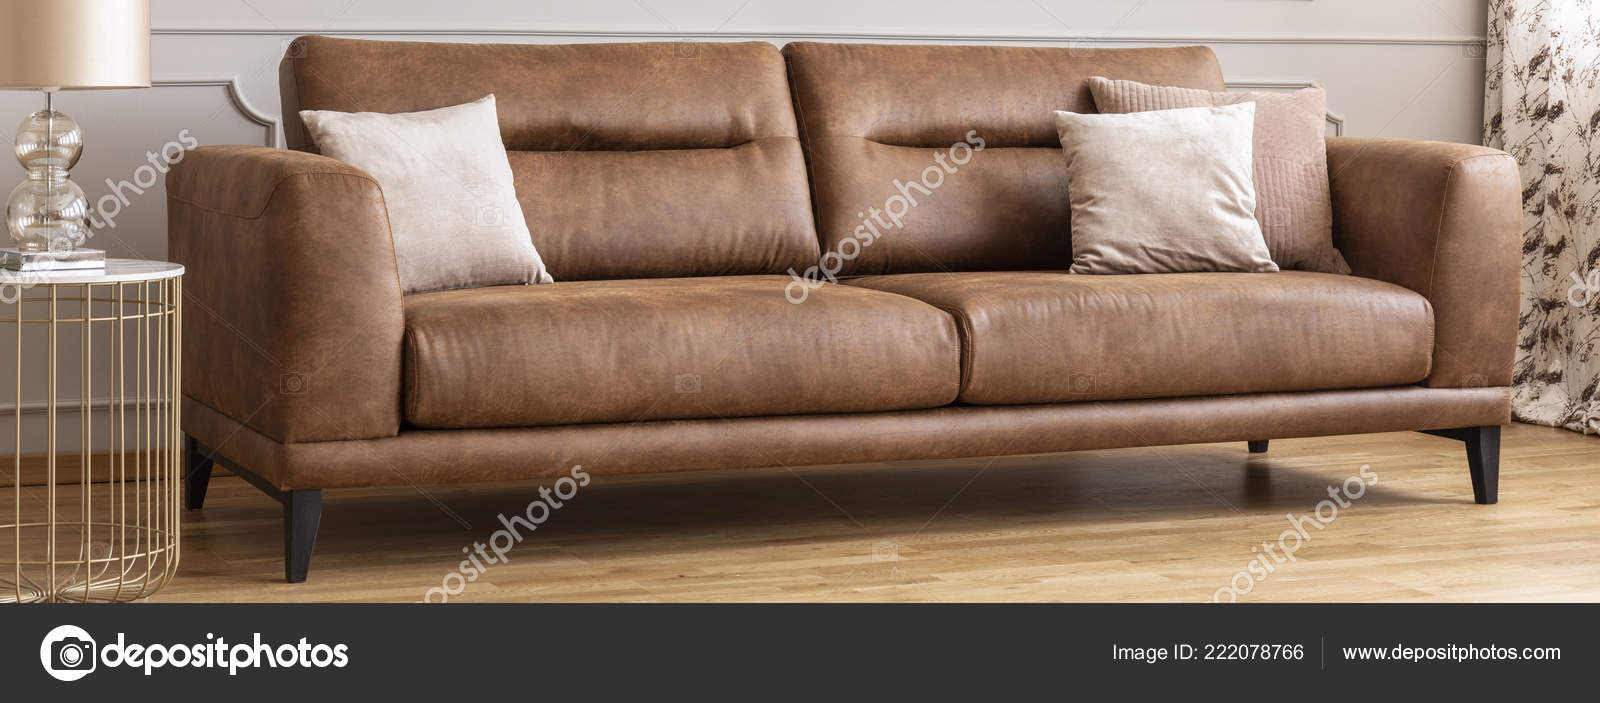 Picture of: Big Comfy Leather Armchair Panoramic View Big Comfortable Leather Sofa Pillows Real Photo Stock Photo C Photographee Eu 222078766